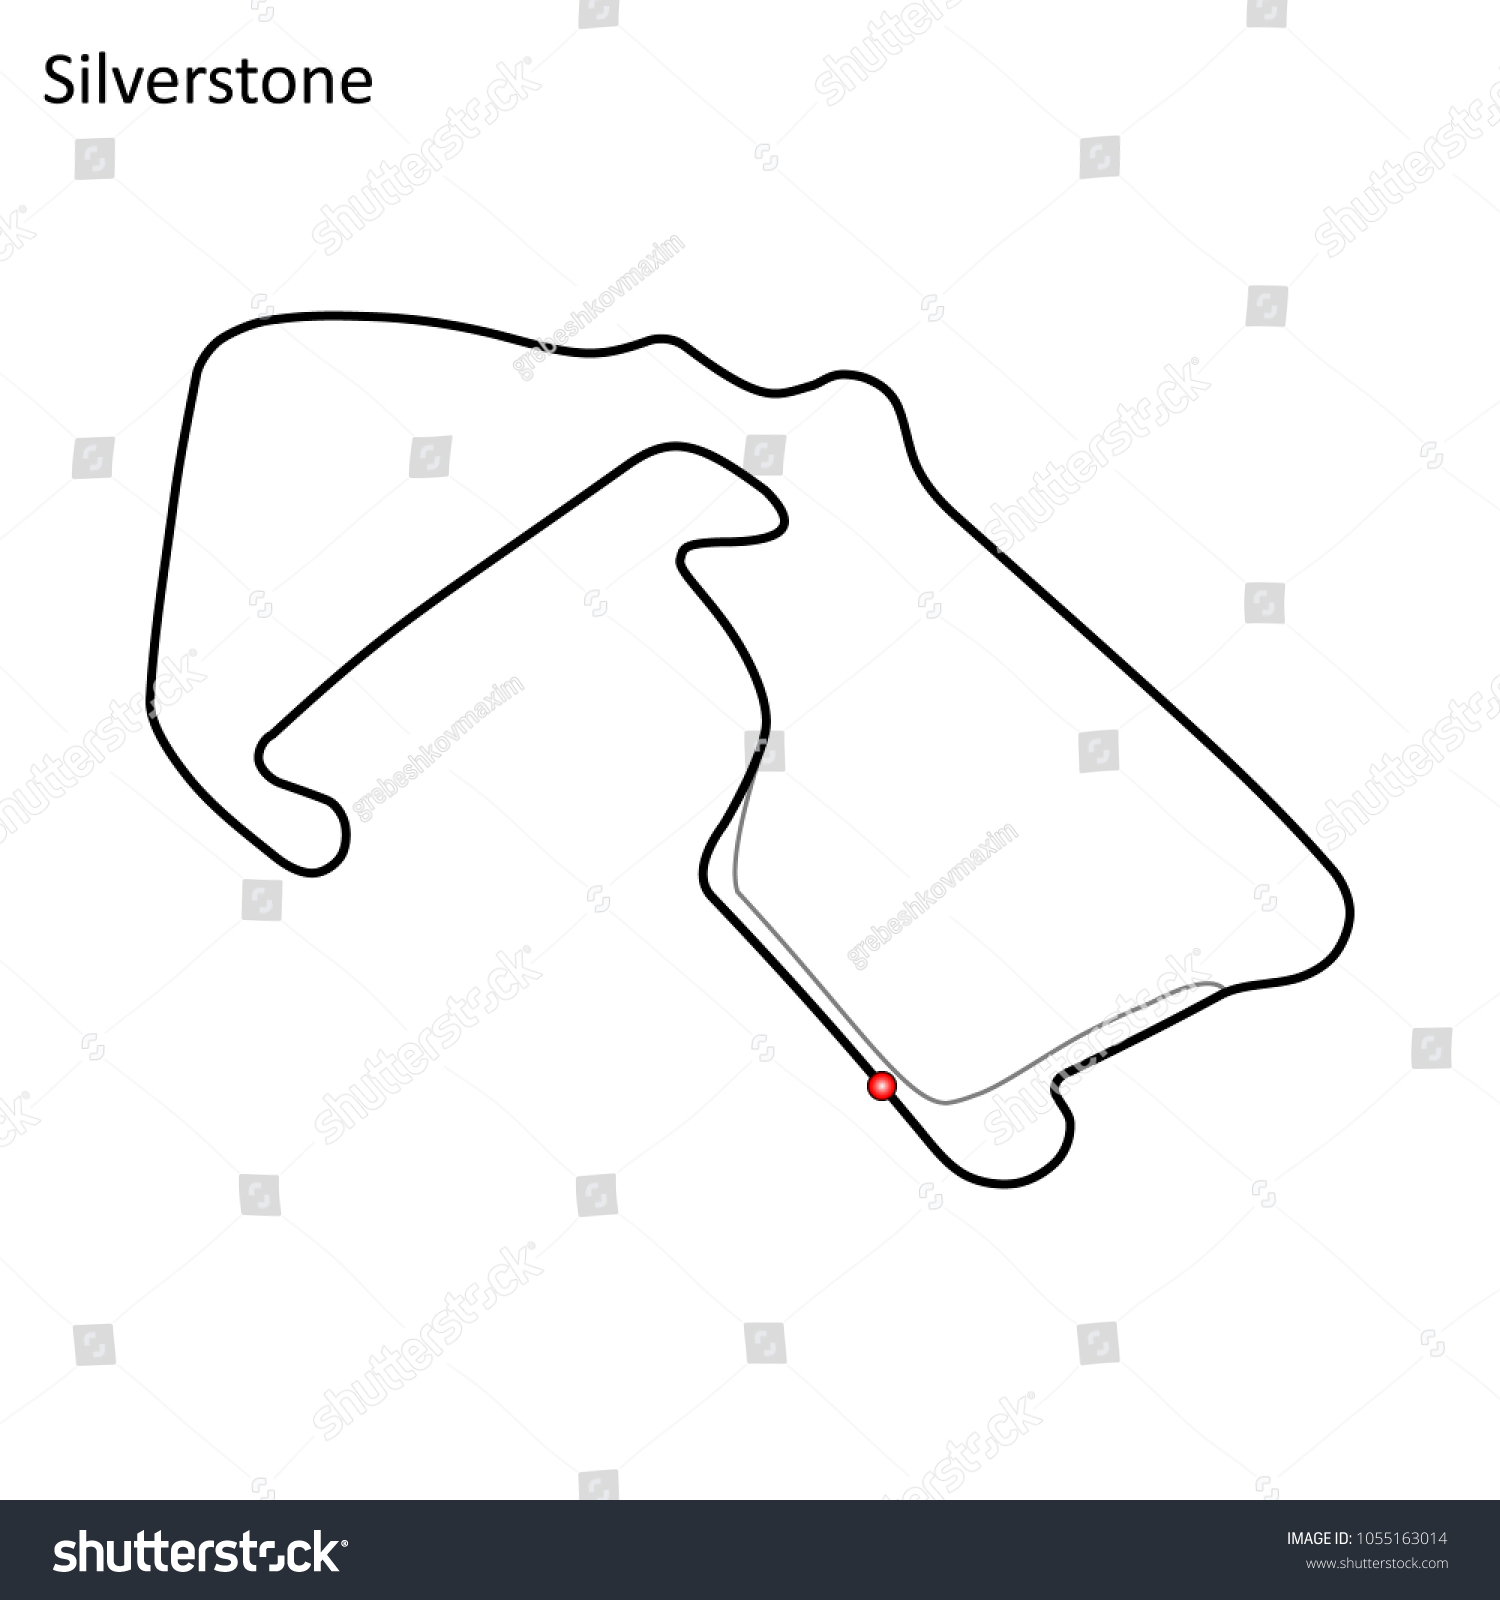 Silverstone Grand Prix Race Track Circuit Stock Vector 1055163014 ...